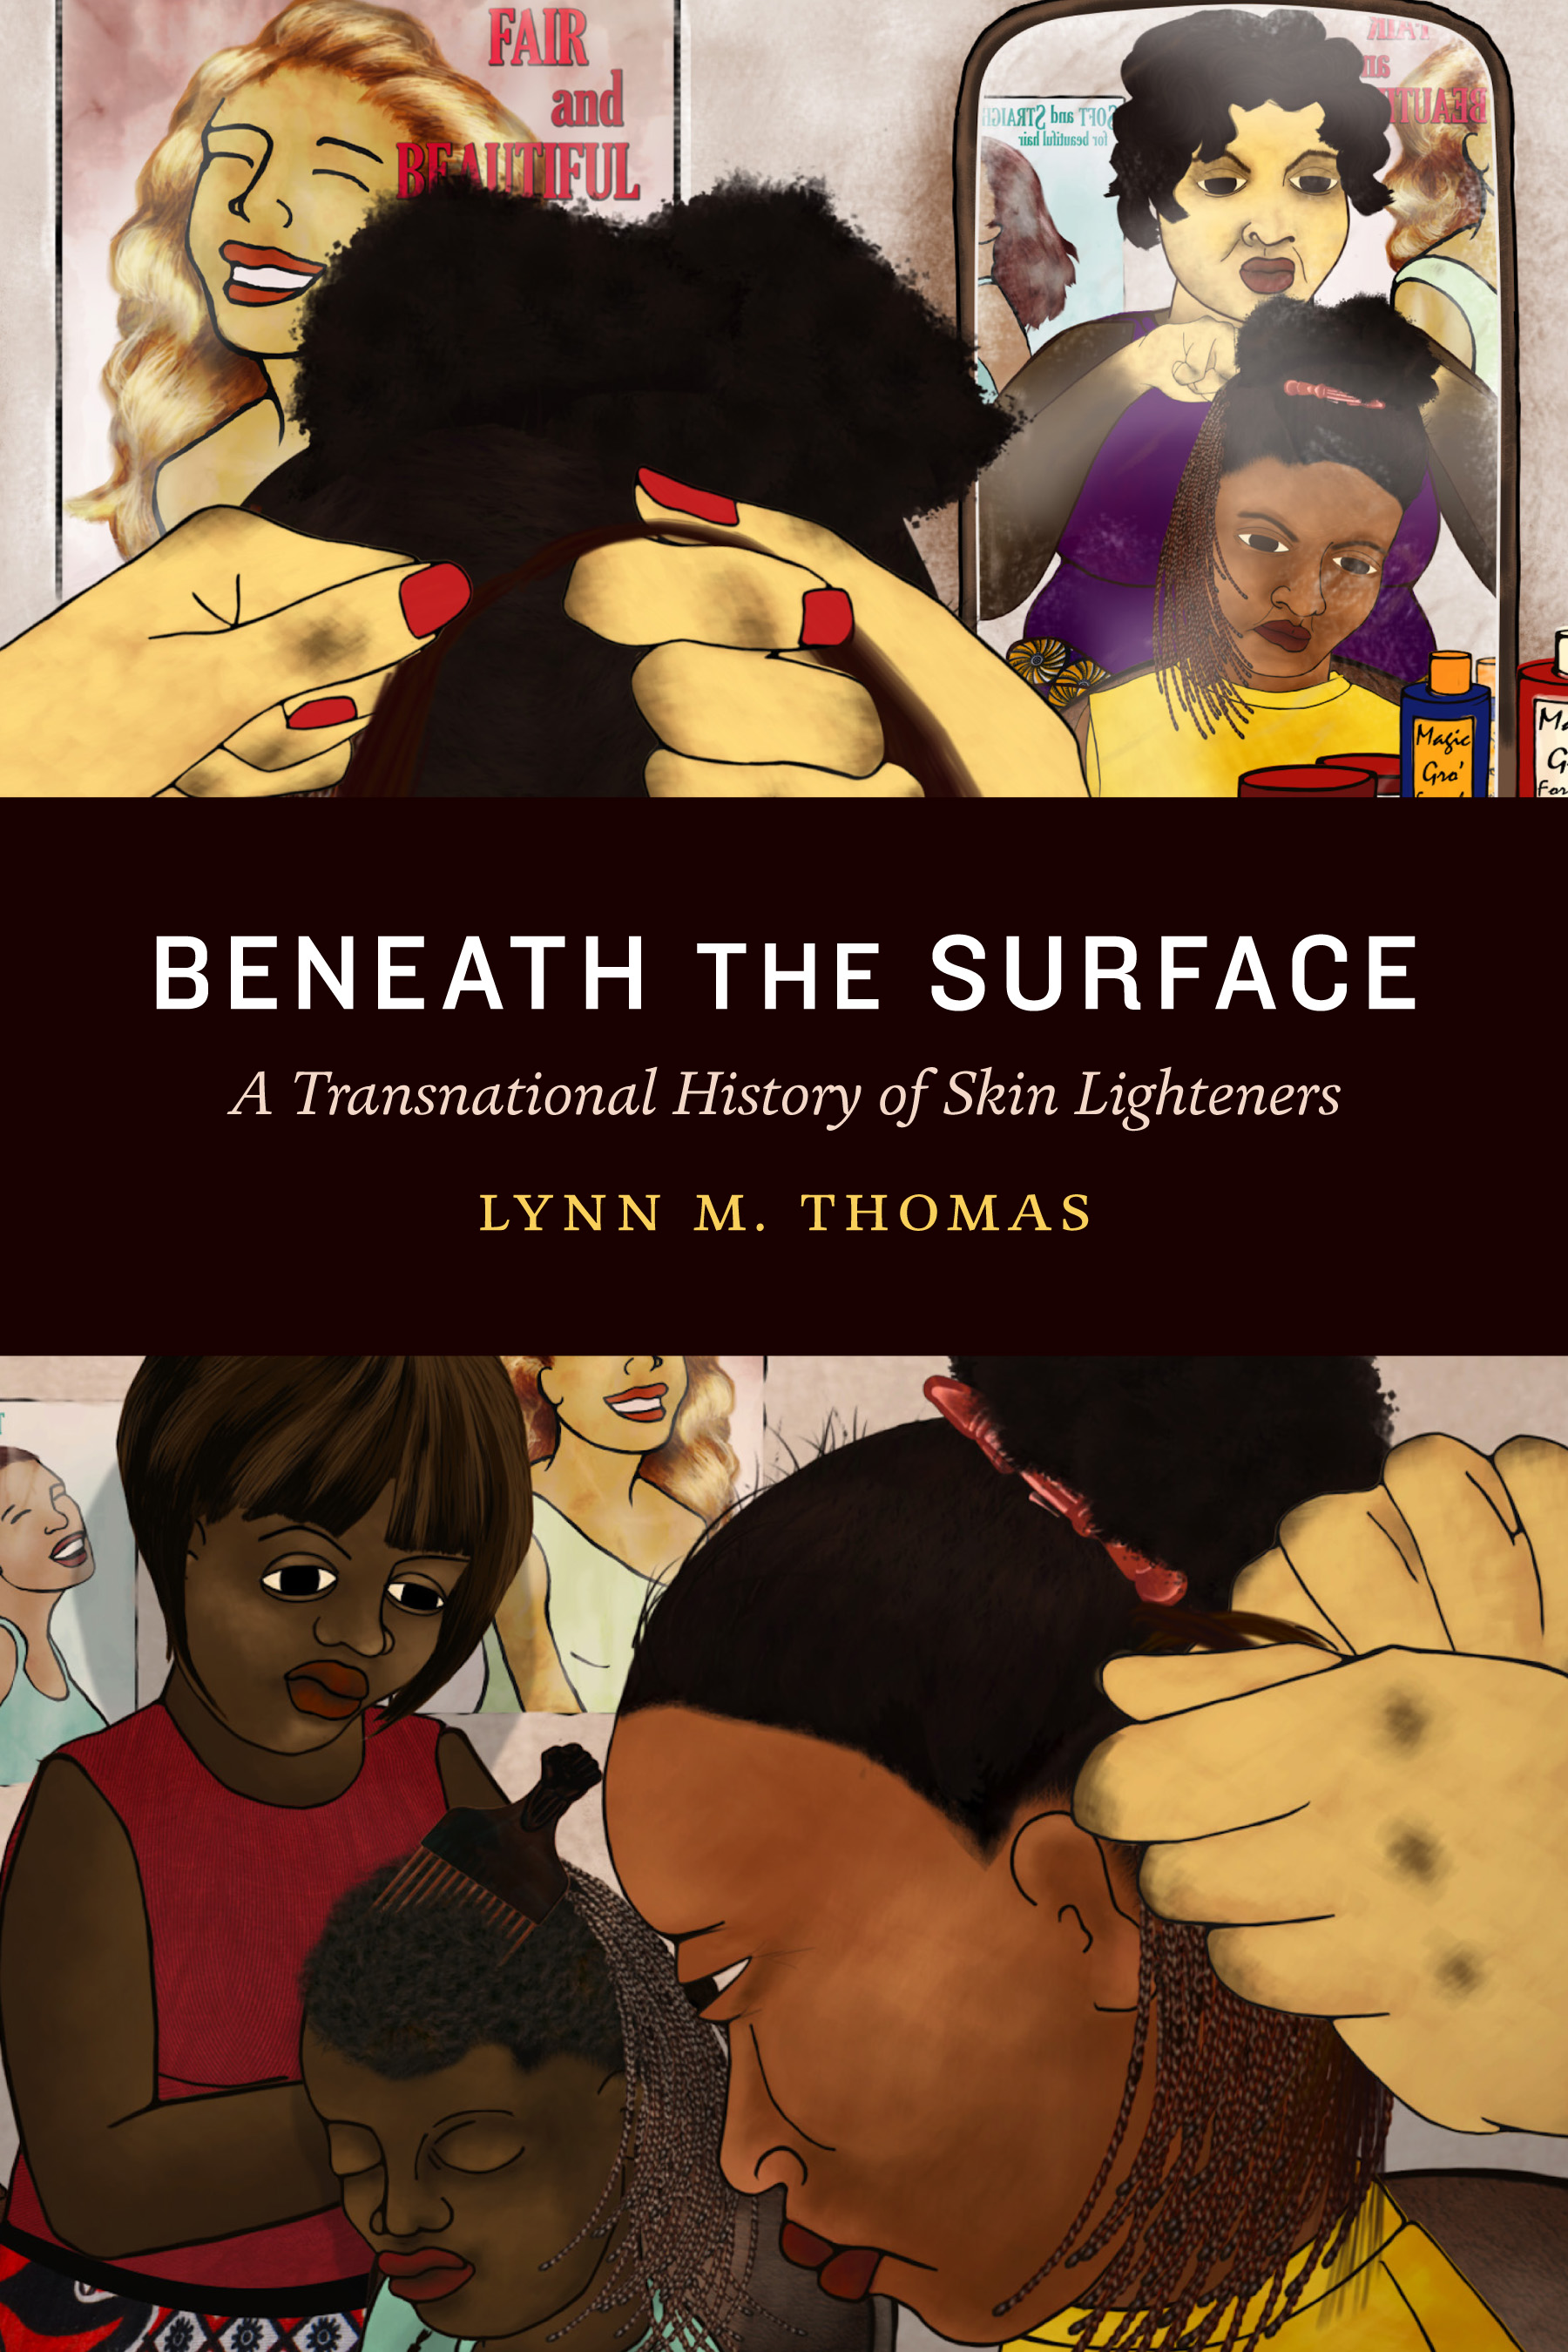 book cover: Beneath the Surface: A Transnational History of Skin Lighteners